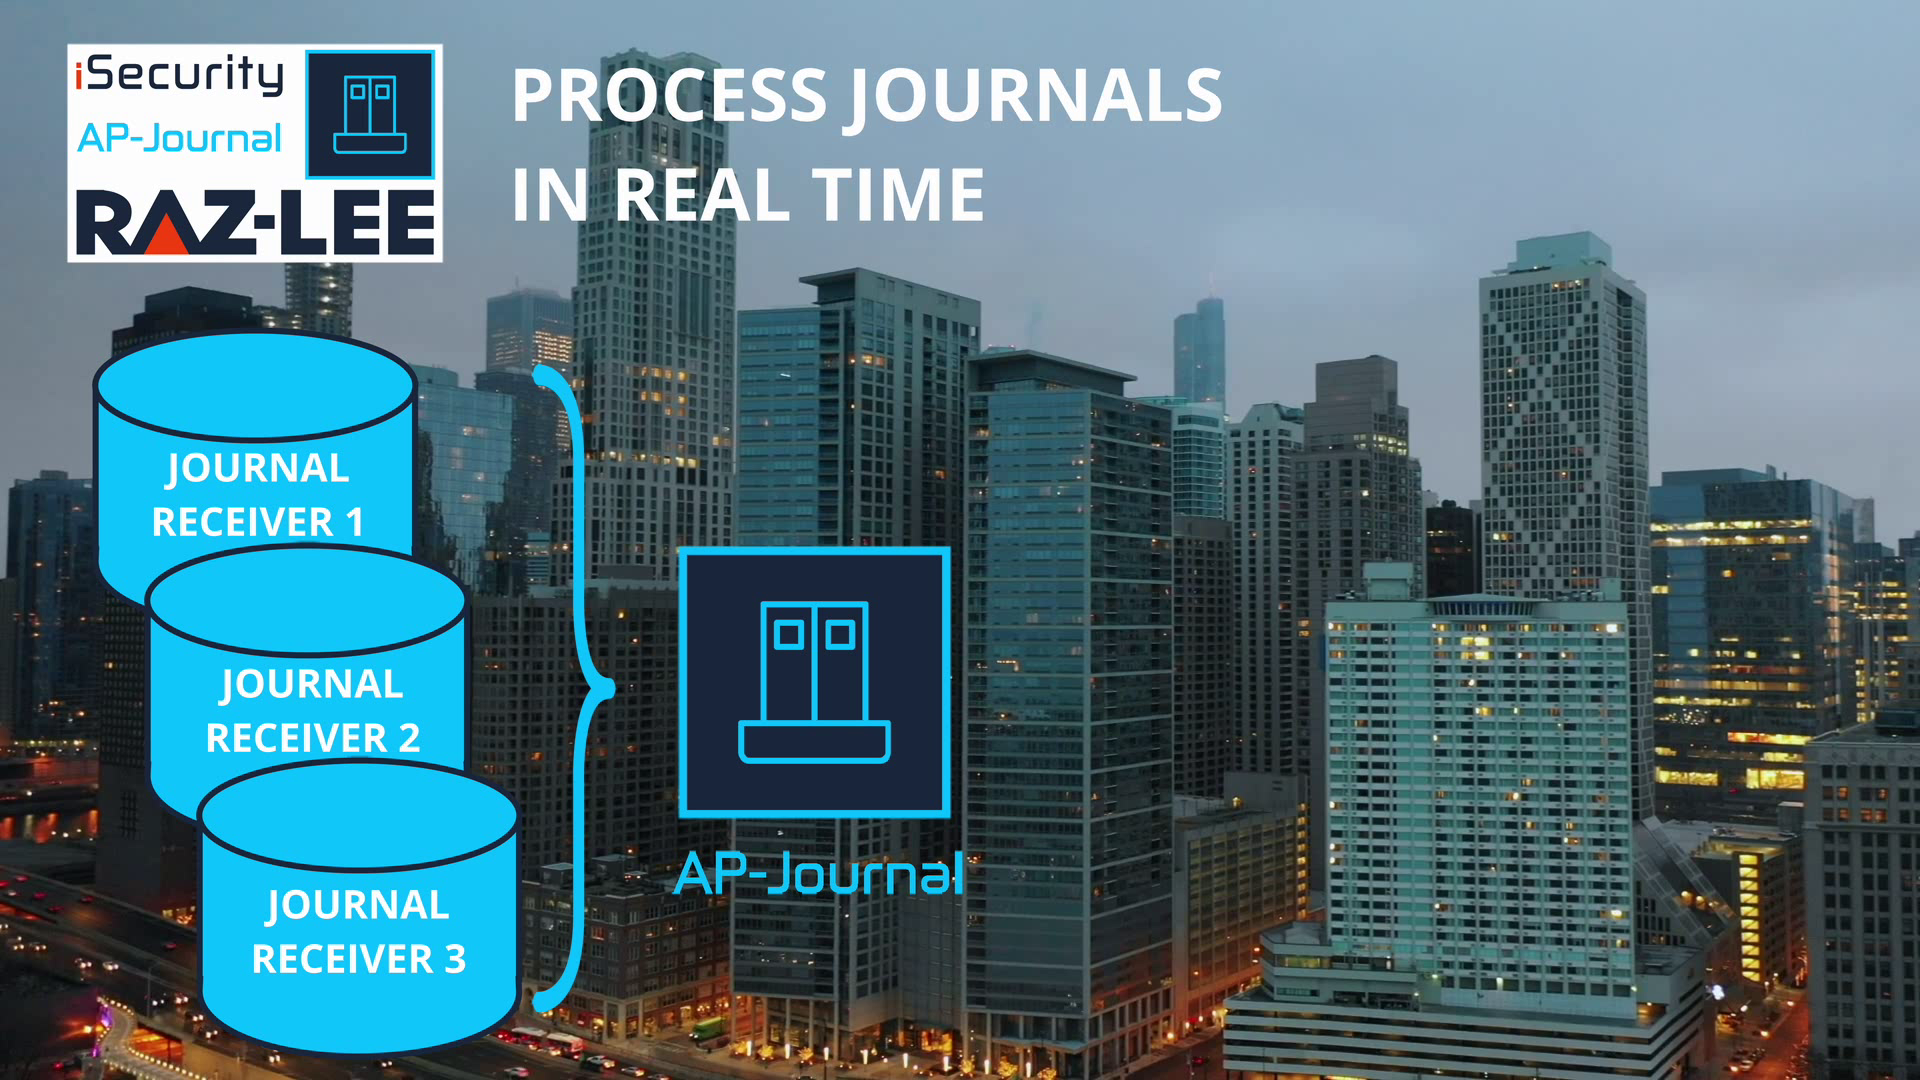 AP-Journal, database monitoring